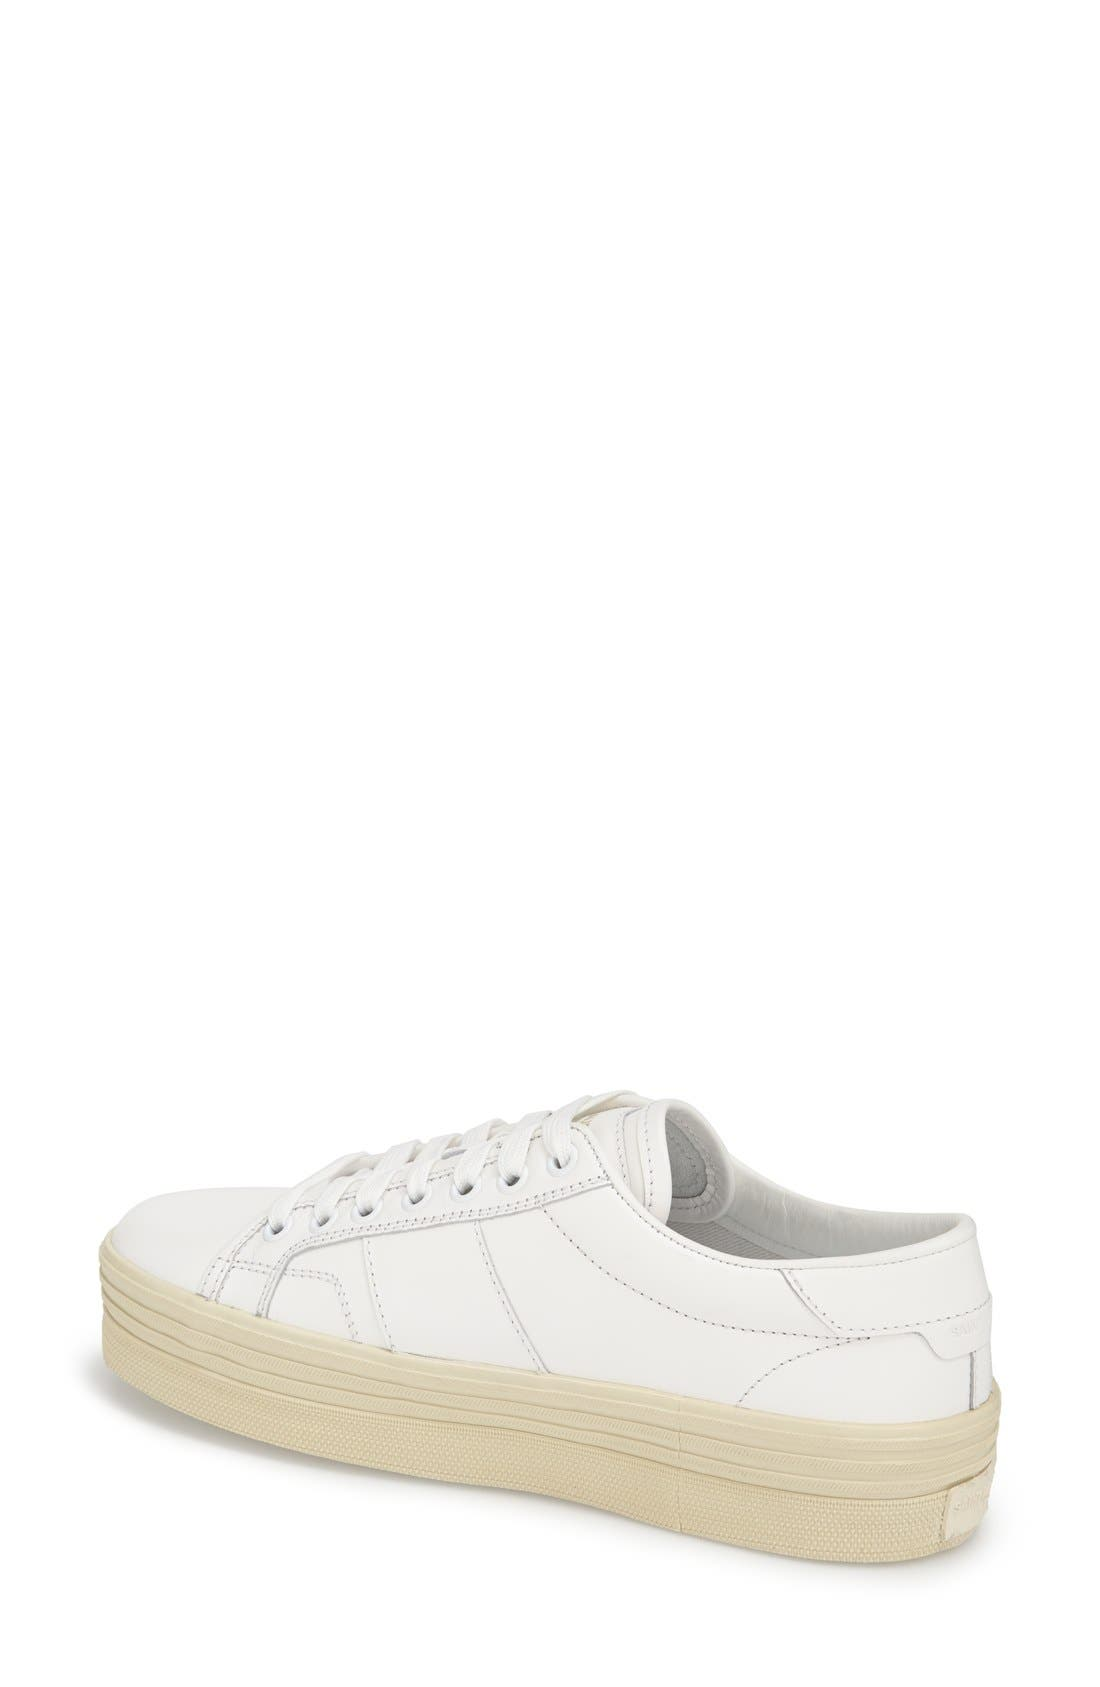 Alternate Image 2  - Saint Laurent Double Sole Sneaker (Women)